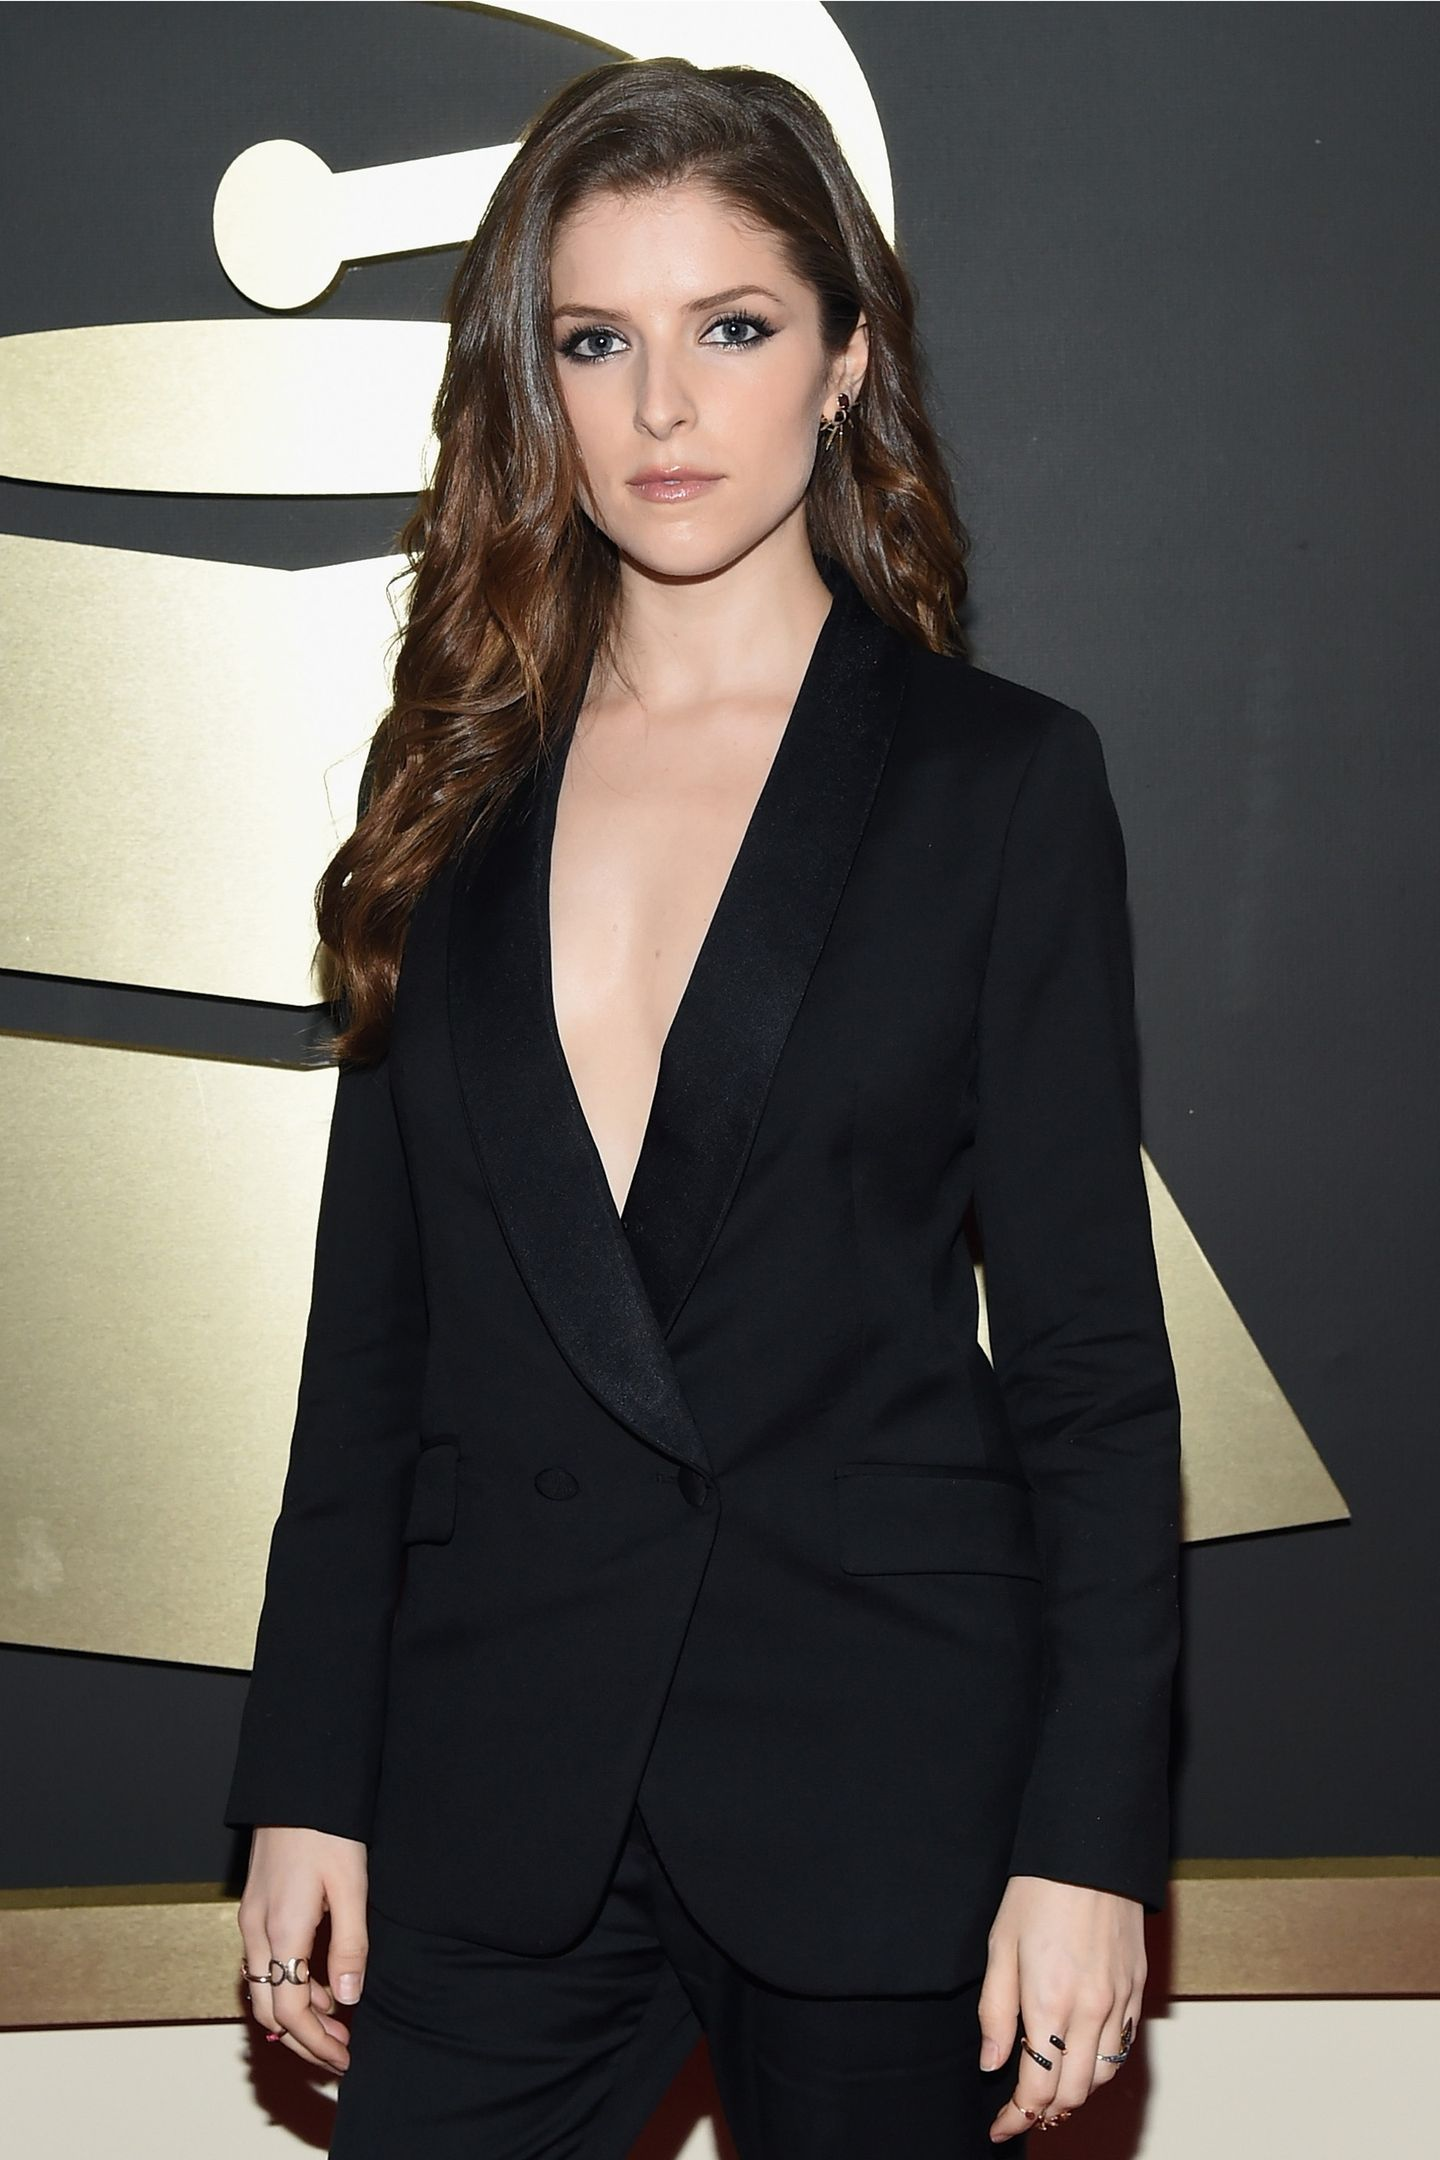 Anna Kendrick at the GRAMMY Awards in 2015  / GETTY